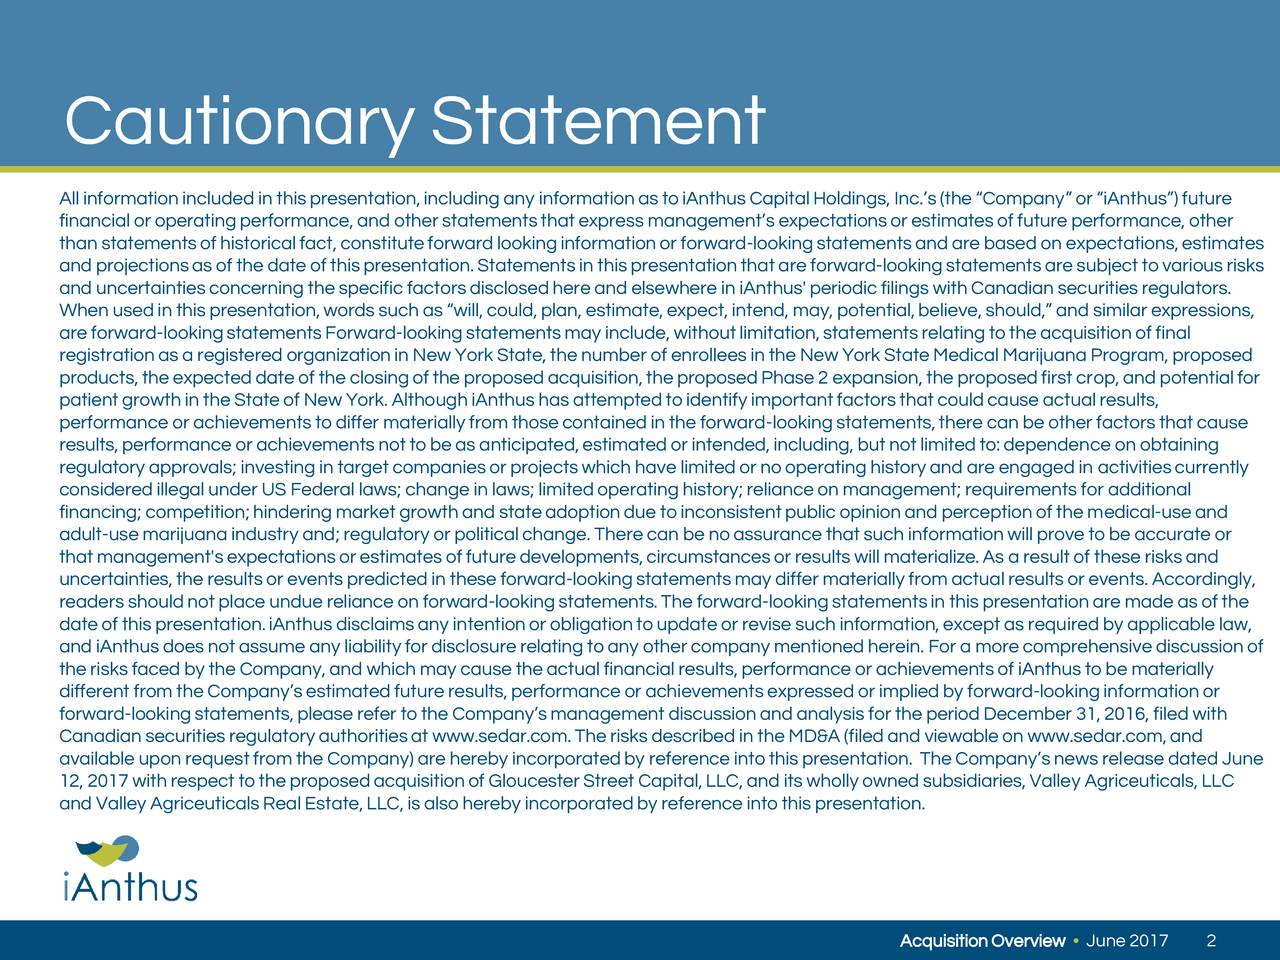 All informationincluded in this presentation,including any informationas to iAnthus CapitalHoldings, Inc.s(the Company or iAnthus) future financial or operating performance, and other statementsthat express managements expectationsor estimatesof future performance, other than statementsof historicalfact, constituteforward lookinginformationor forward-lookingstatementsand are based on expectations,estimates and projectionsas of the date of this presentation.Statementsin this presentationthat are forward-lookingstatementsare subject to various risks and uncertaintiesconcerning the specific factorsdisclosedhere and elsewhere in iAnthus' periodic filings with Canadian securitiesregulators. When used in this presentation,wordssuch as will,could,plan, estimate,expect,intend, may, potential,believe, should, and similar expressions, are forward-lookingstatementsForward-lookingstatementsmay include, withoutlimitation,statementsrelating to the acquisitionof final registrationas a registered organizationin New York State, the number of enrolleesin the New York State Medical Marijuana Program, proposed products,the expected date of the closingof the proposedacquisition,the proposedPhase 2 expansion,the proposedfirst crop, and potentialfor patient growth in the State of New York. Although iAnthus has attemptedto identify importantfactorsthat could cause actual results, performance or achievementsto differ materially from thosecontained in the forward-lookingstatements,there can be other factorsthat cause results,performance or achievementsnot to be as anticipated,estimatedor intended,including, but not limitedto:dependence on obtaining regulatory approvals; investing in target companies or projectswhich have limitedor no operating historyand are engaged in activitiescurrently consideredillegal under US Federal laws; change in laws; limitedoperating history;reliance on management; requirements for additional financing; competition;hindering market growth and stateadoptiondue to i